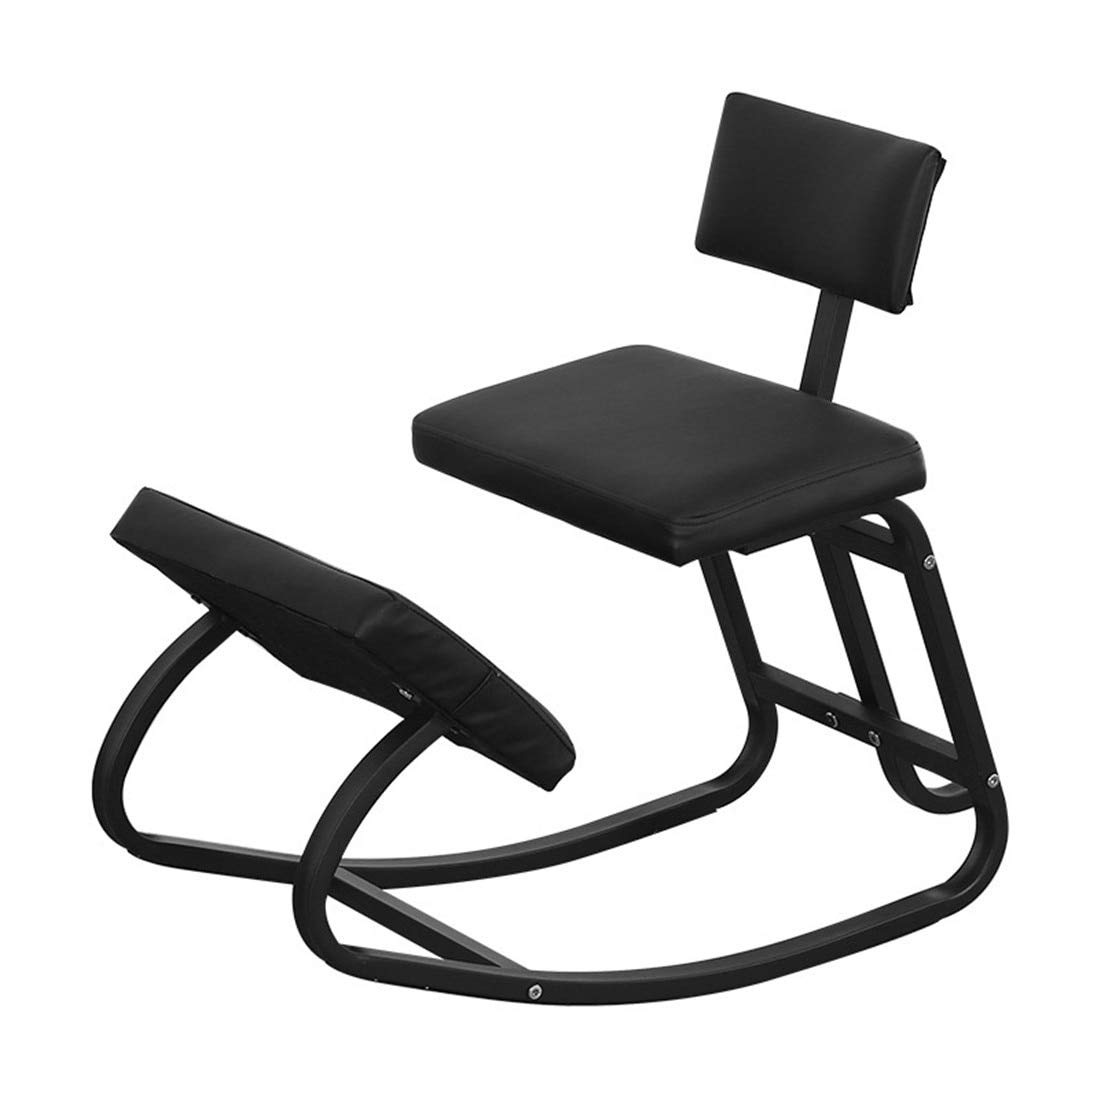 Kneeling Chairs Home Office Ergonomic Balance Kneel Stool Rocking with Back Support for Perfect Posture Kids Children with Backrest(Black Leather) by AJ ZJ Kneeling Chairs